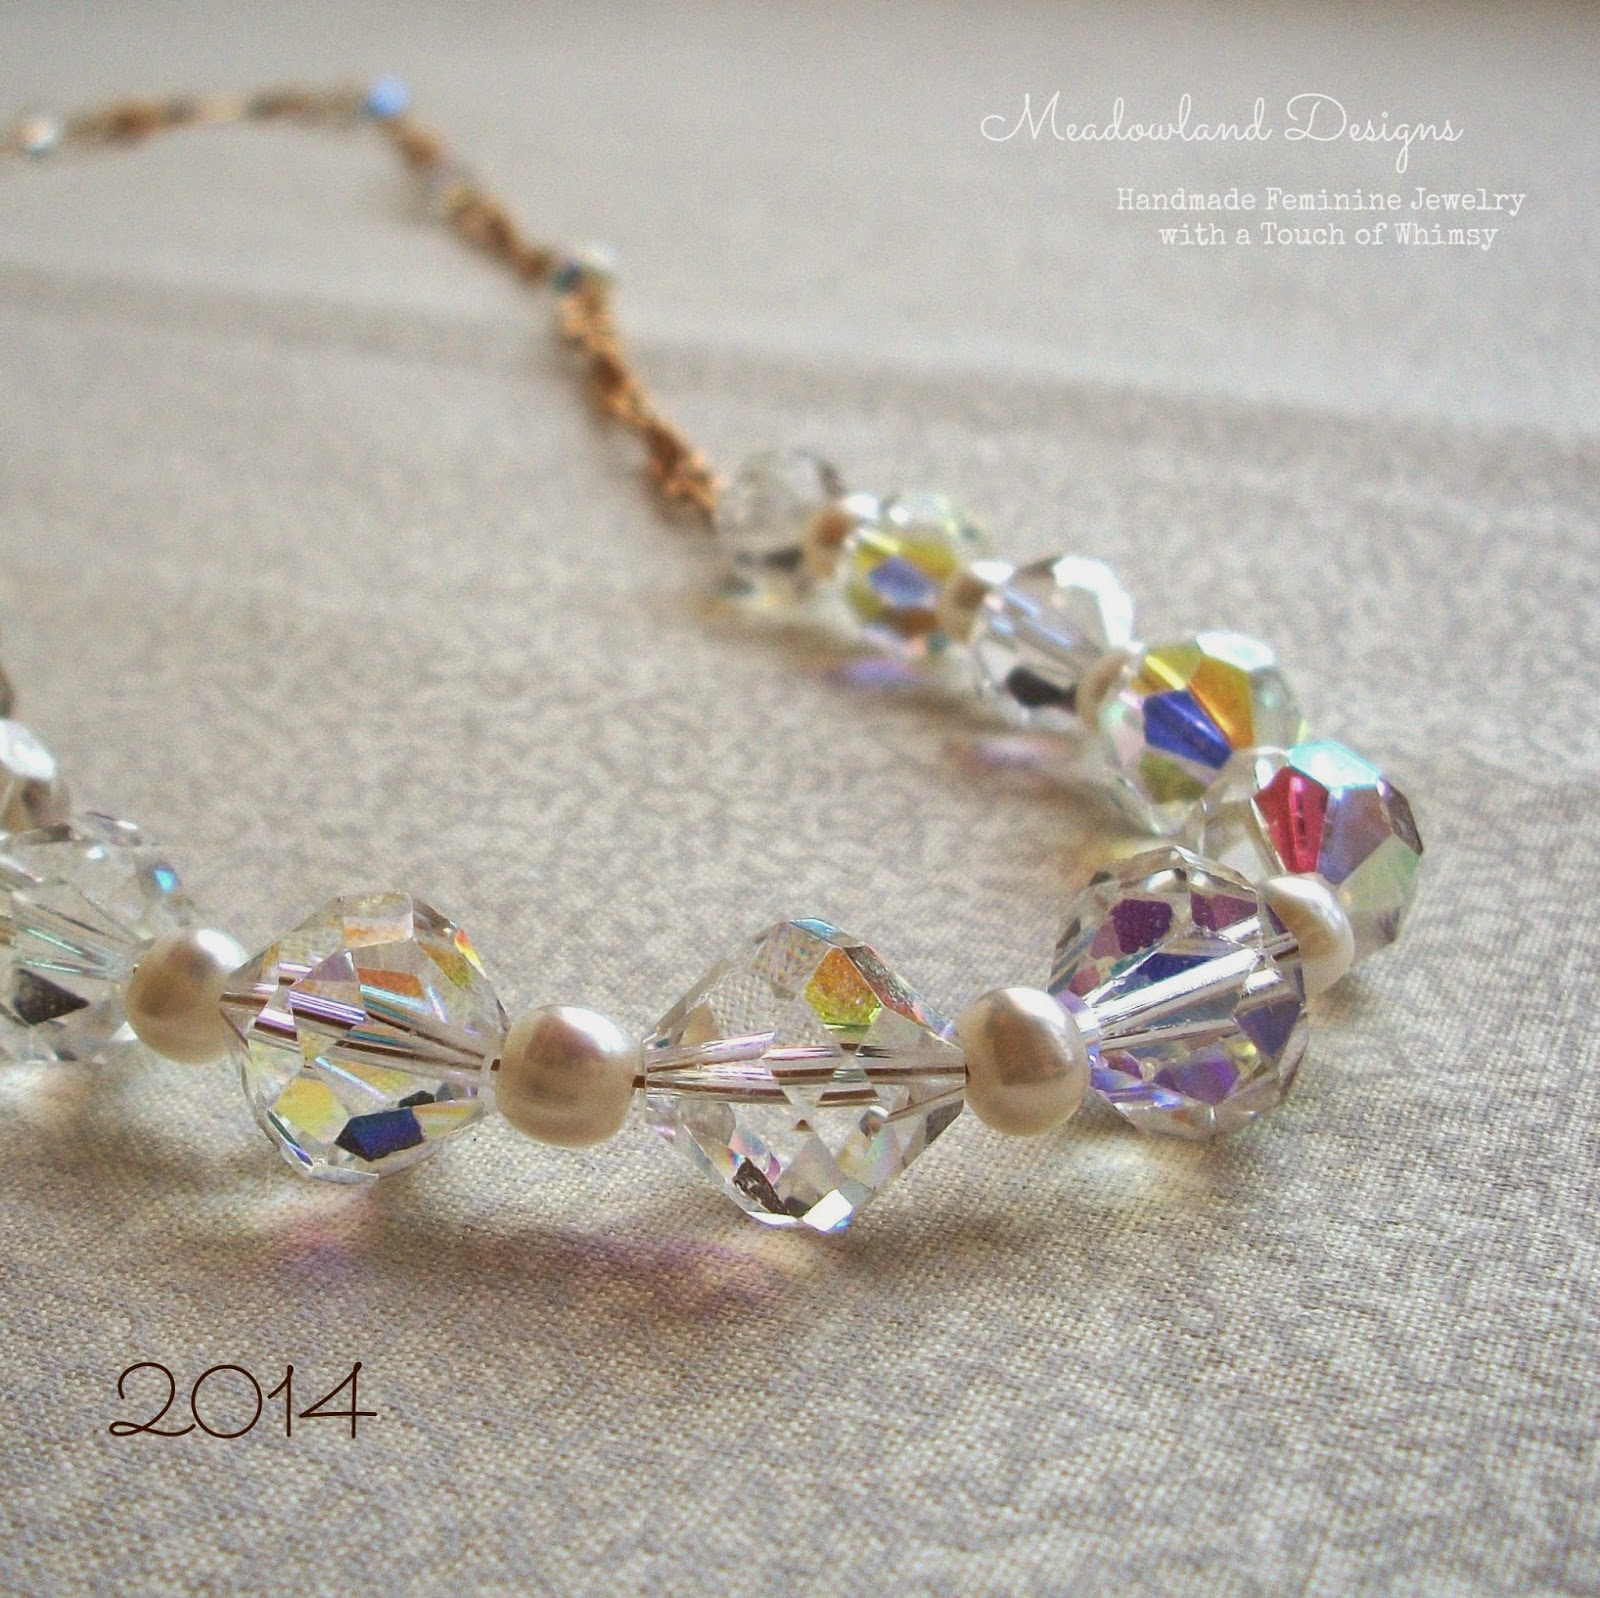 Strung Pearl & Vintage Glass Necklace, 2014